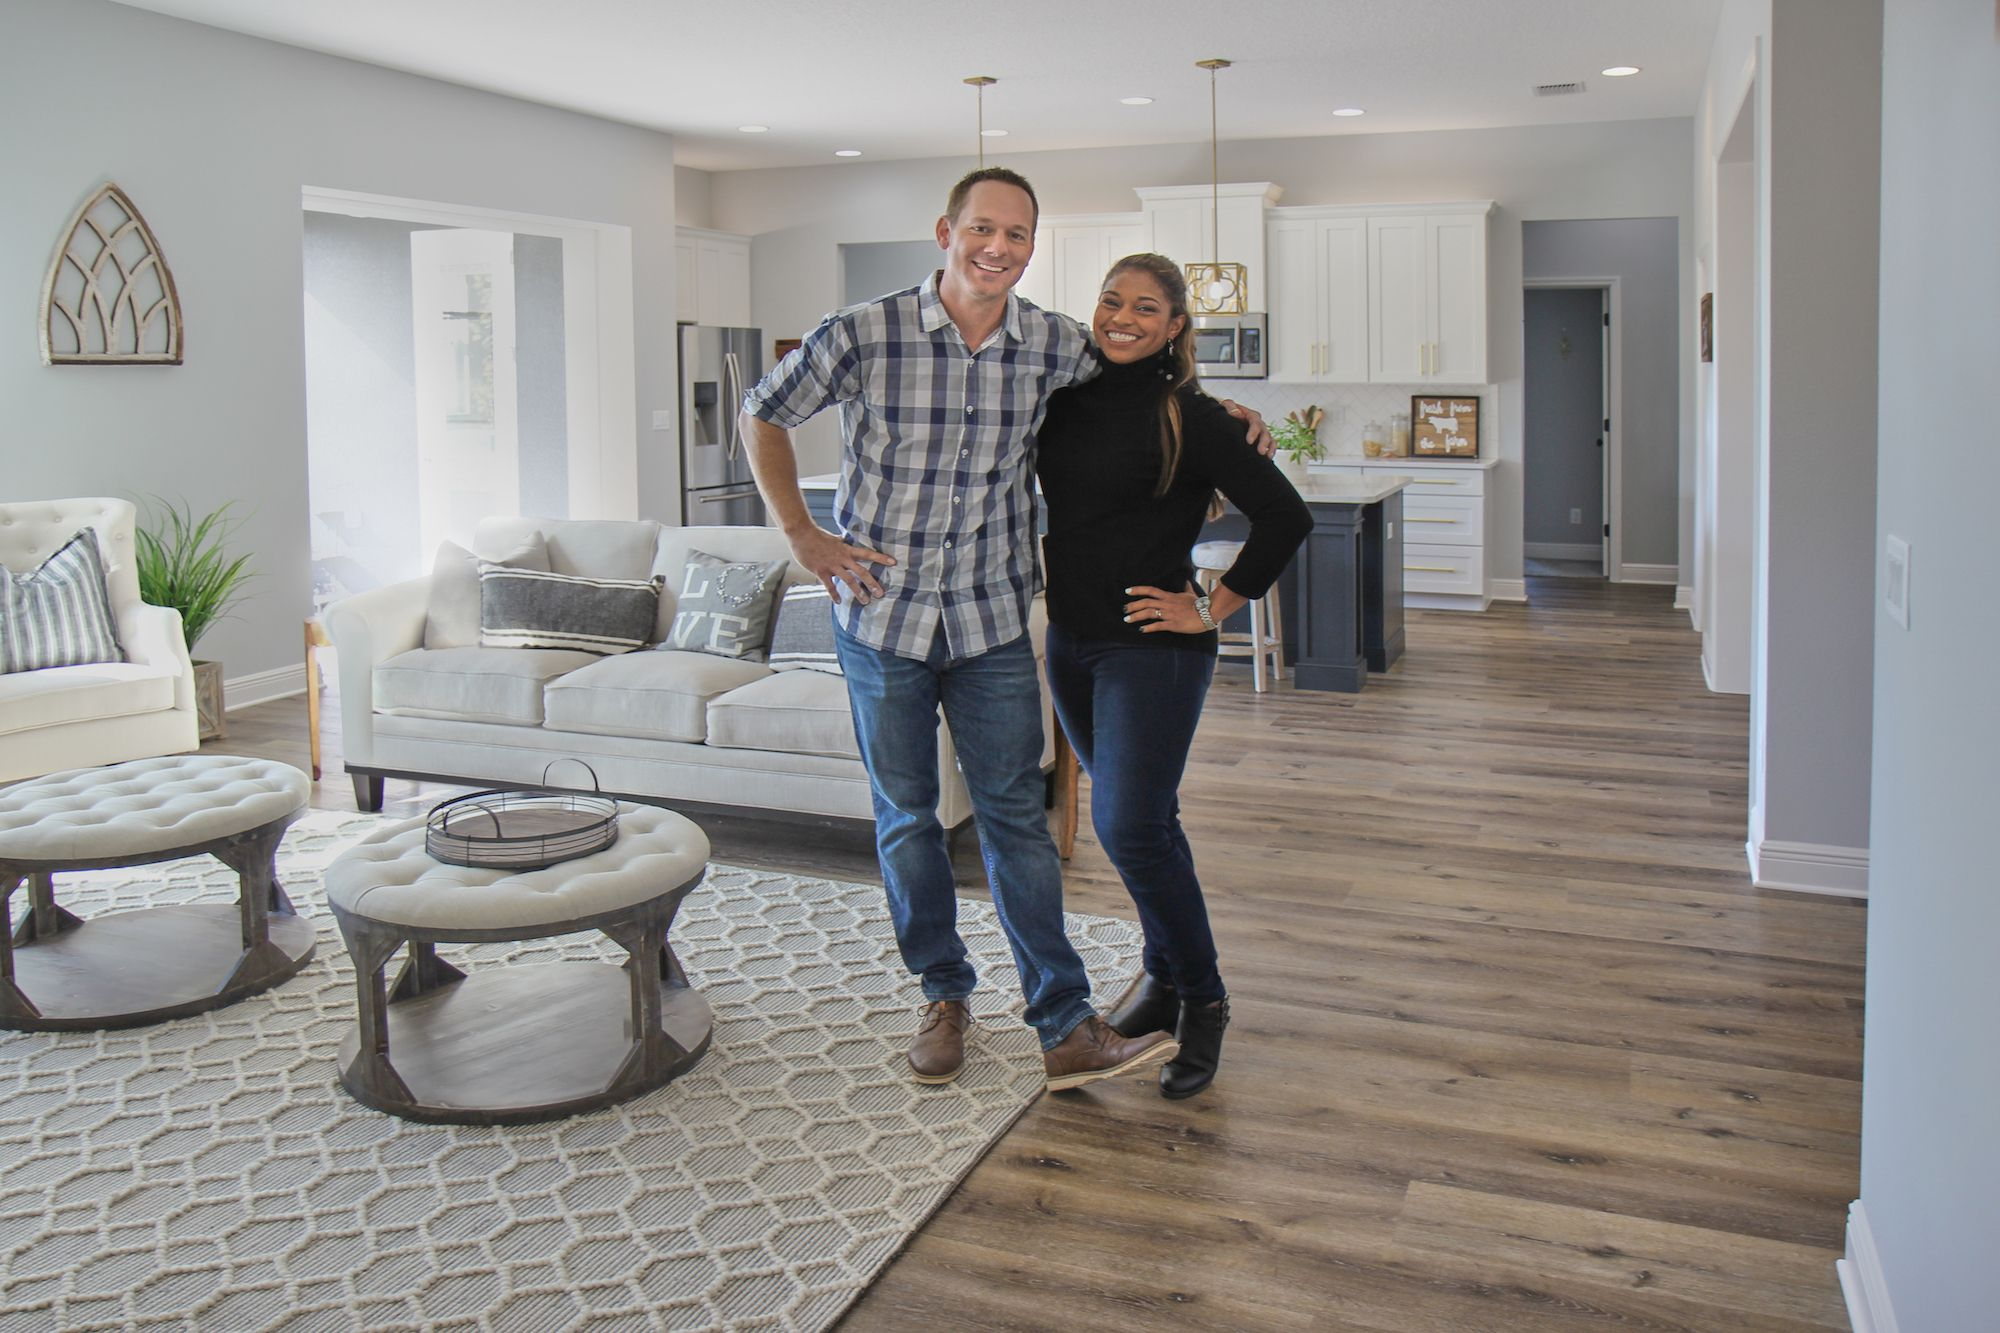 Hgtv S New Show 100 Day Dream Home Will Build Dream Homes In The Greater Tampa Bay Area